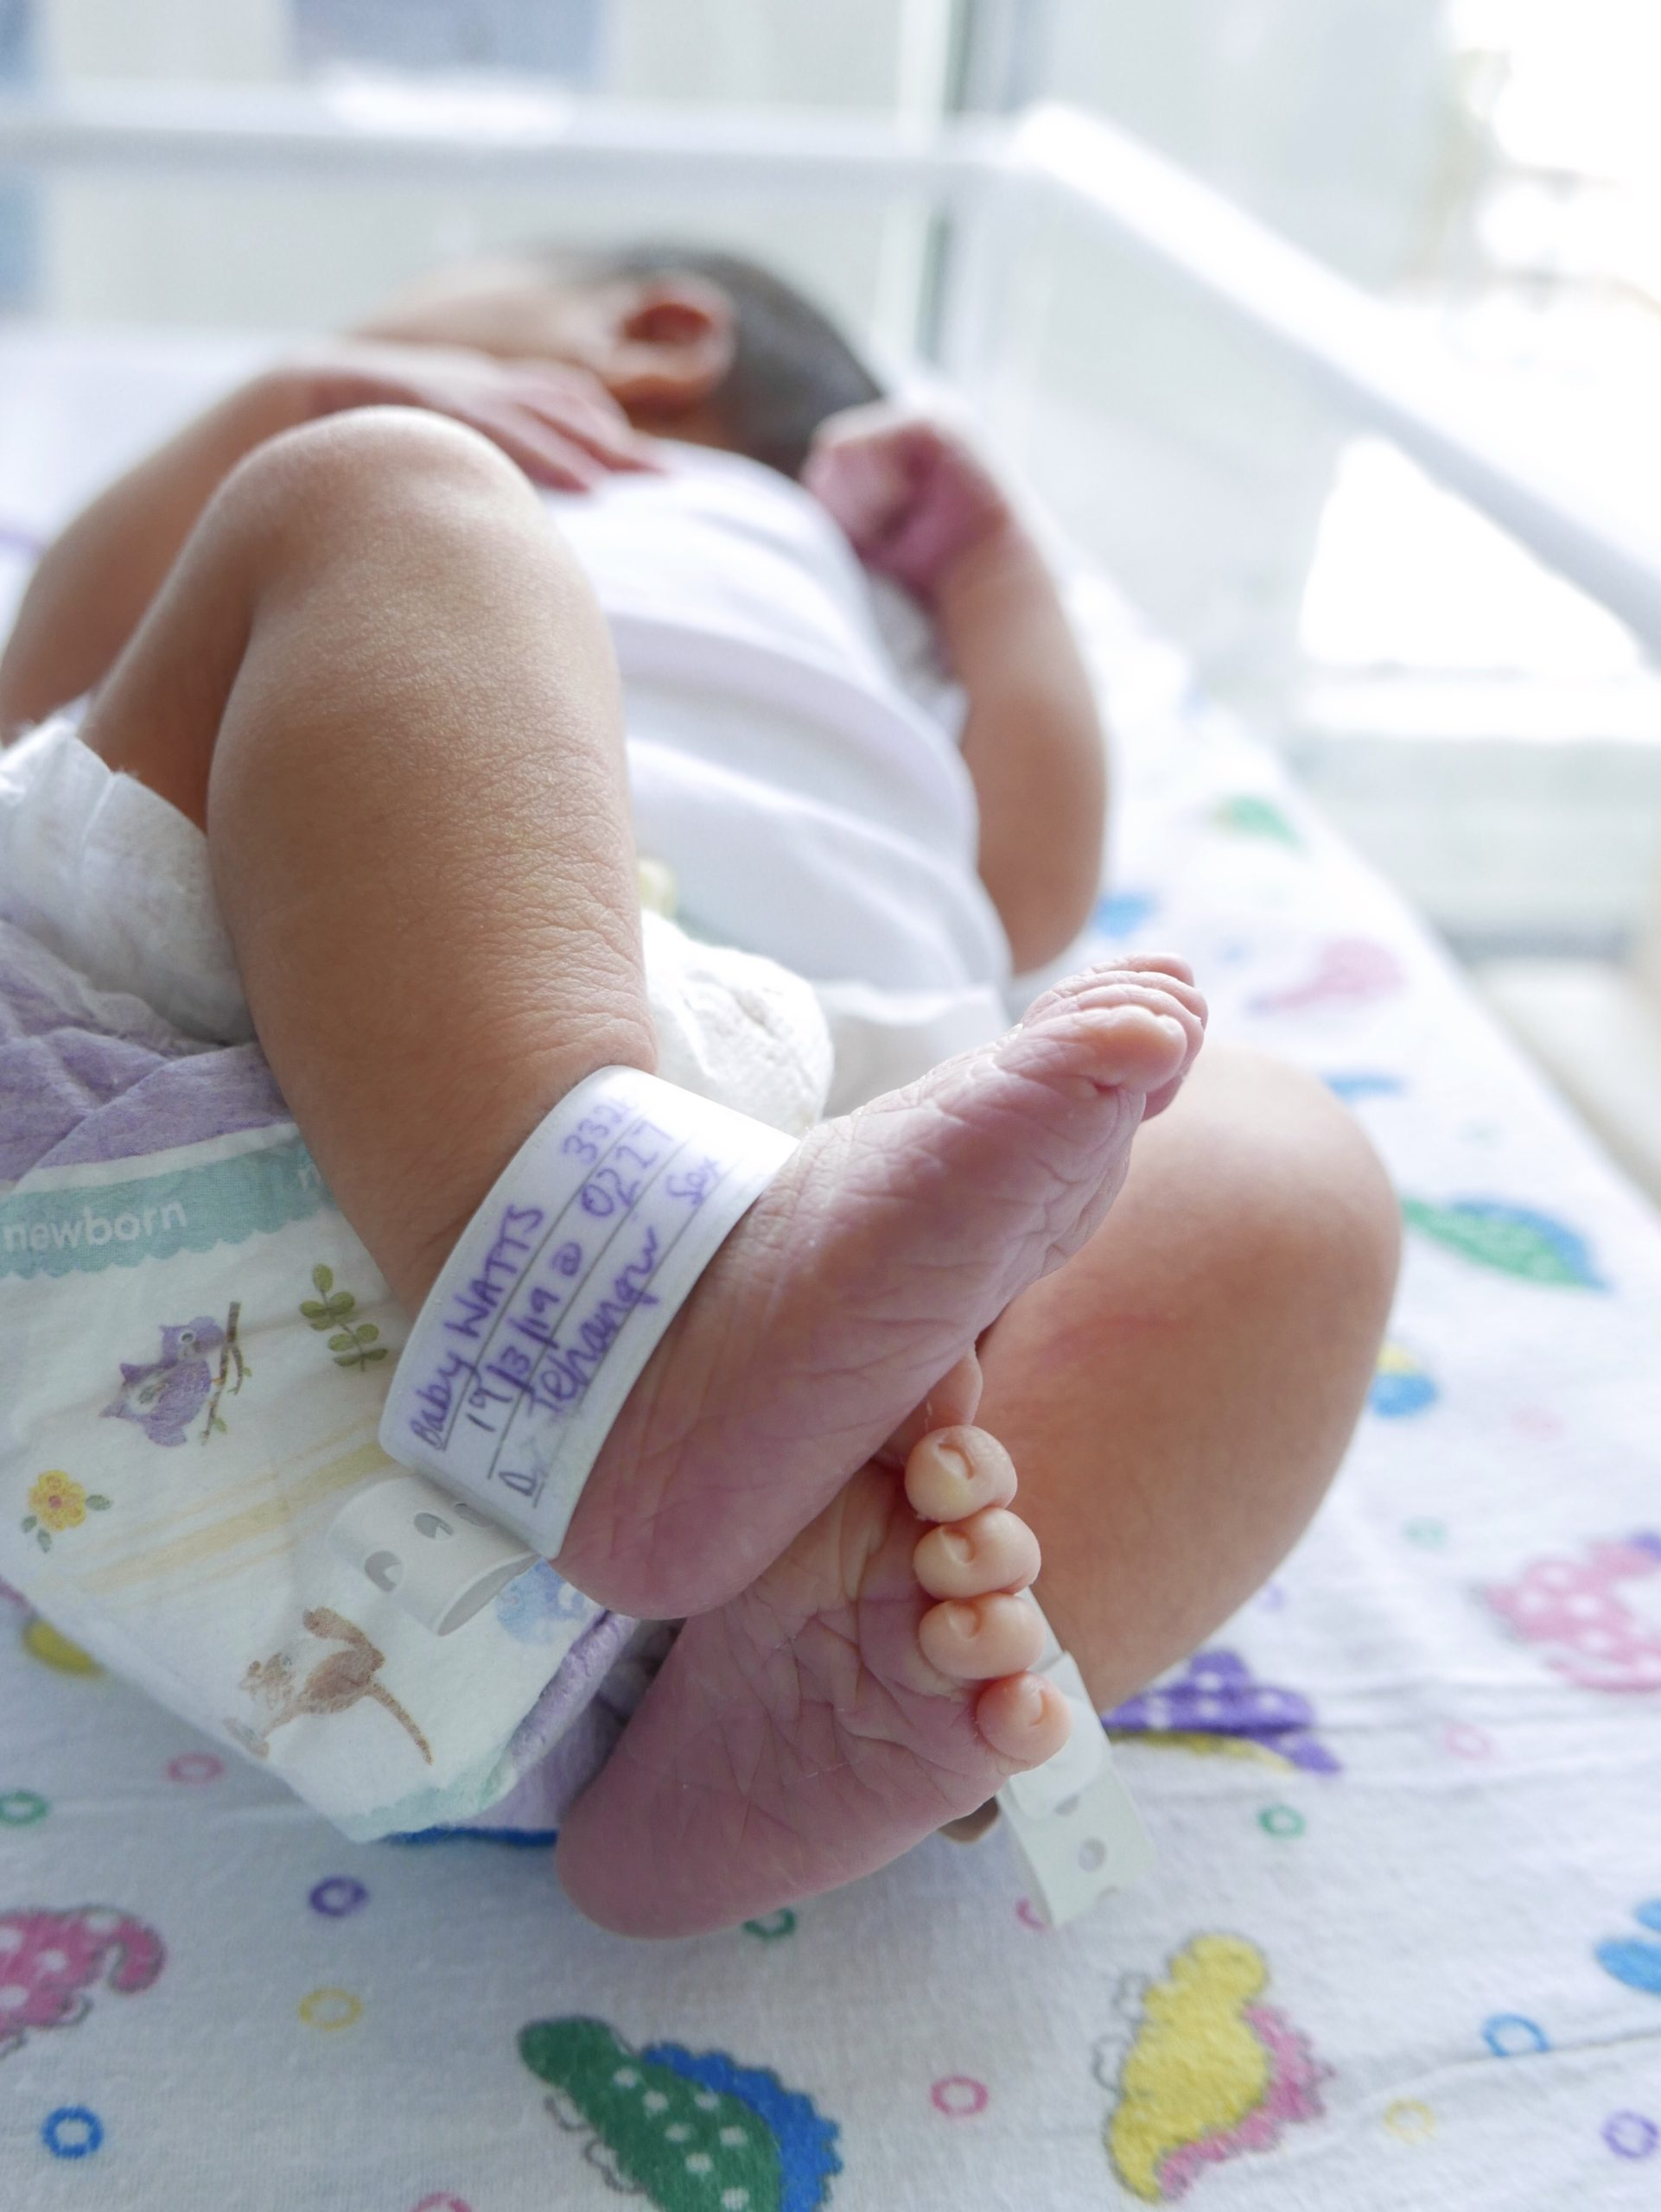 Closeup of newborn baby's feet with hospital anklet